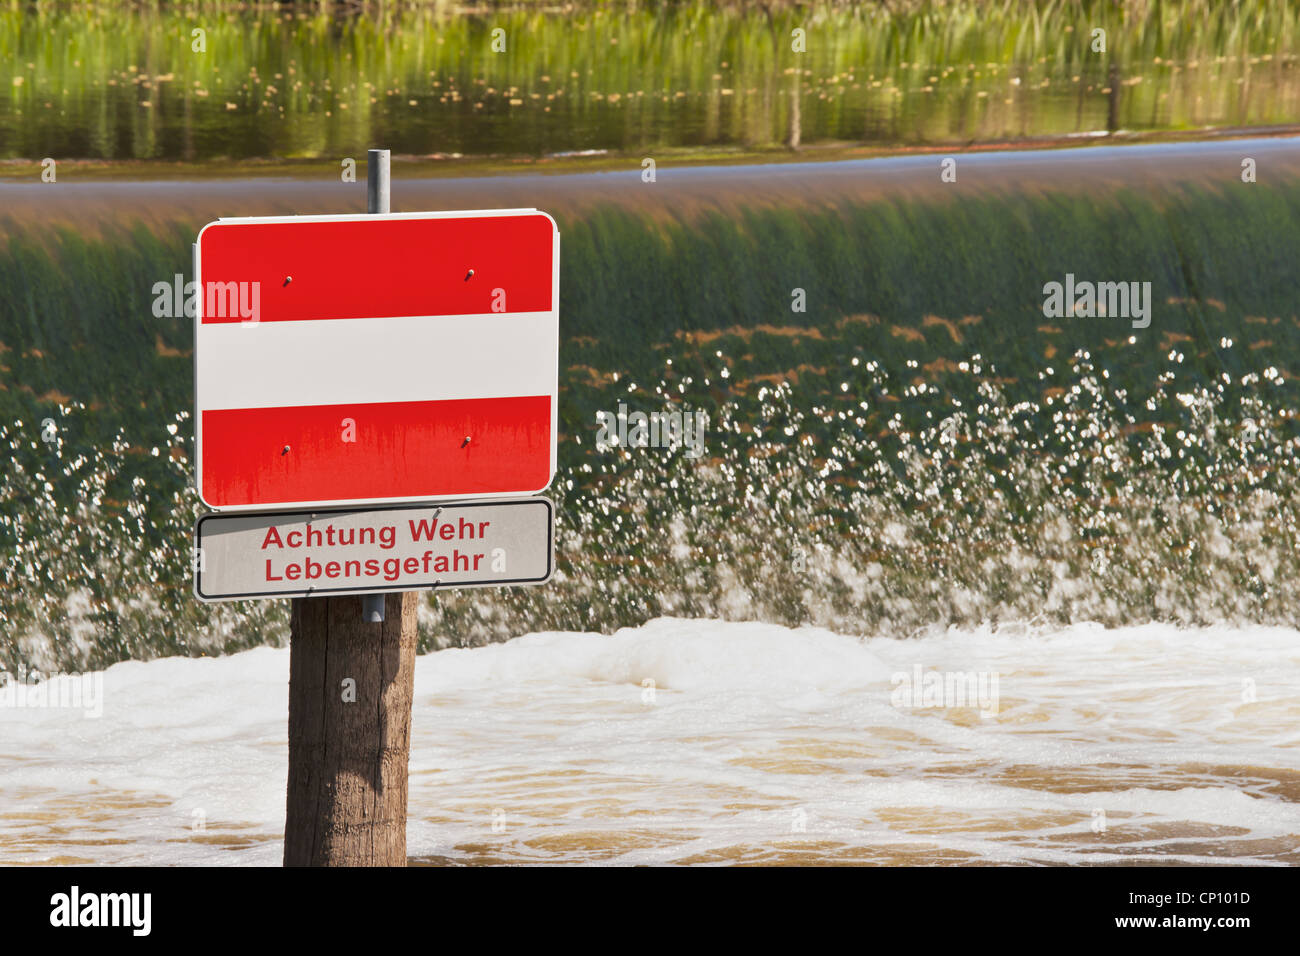 Weir at the river Unstrut in Freyburg (Unstrut), Saxony Anhalt, Germany, Europe Stock Photo